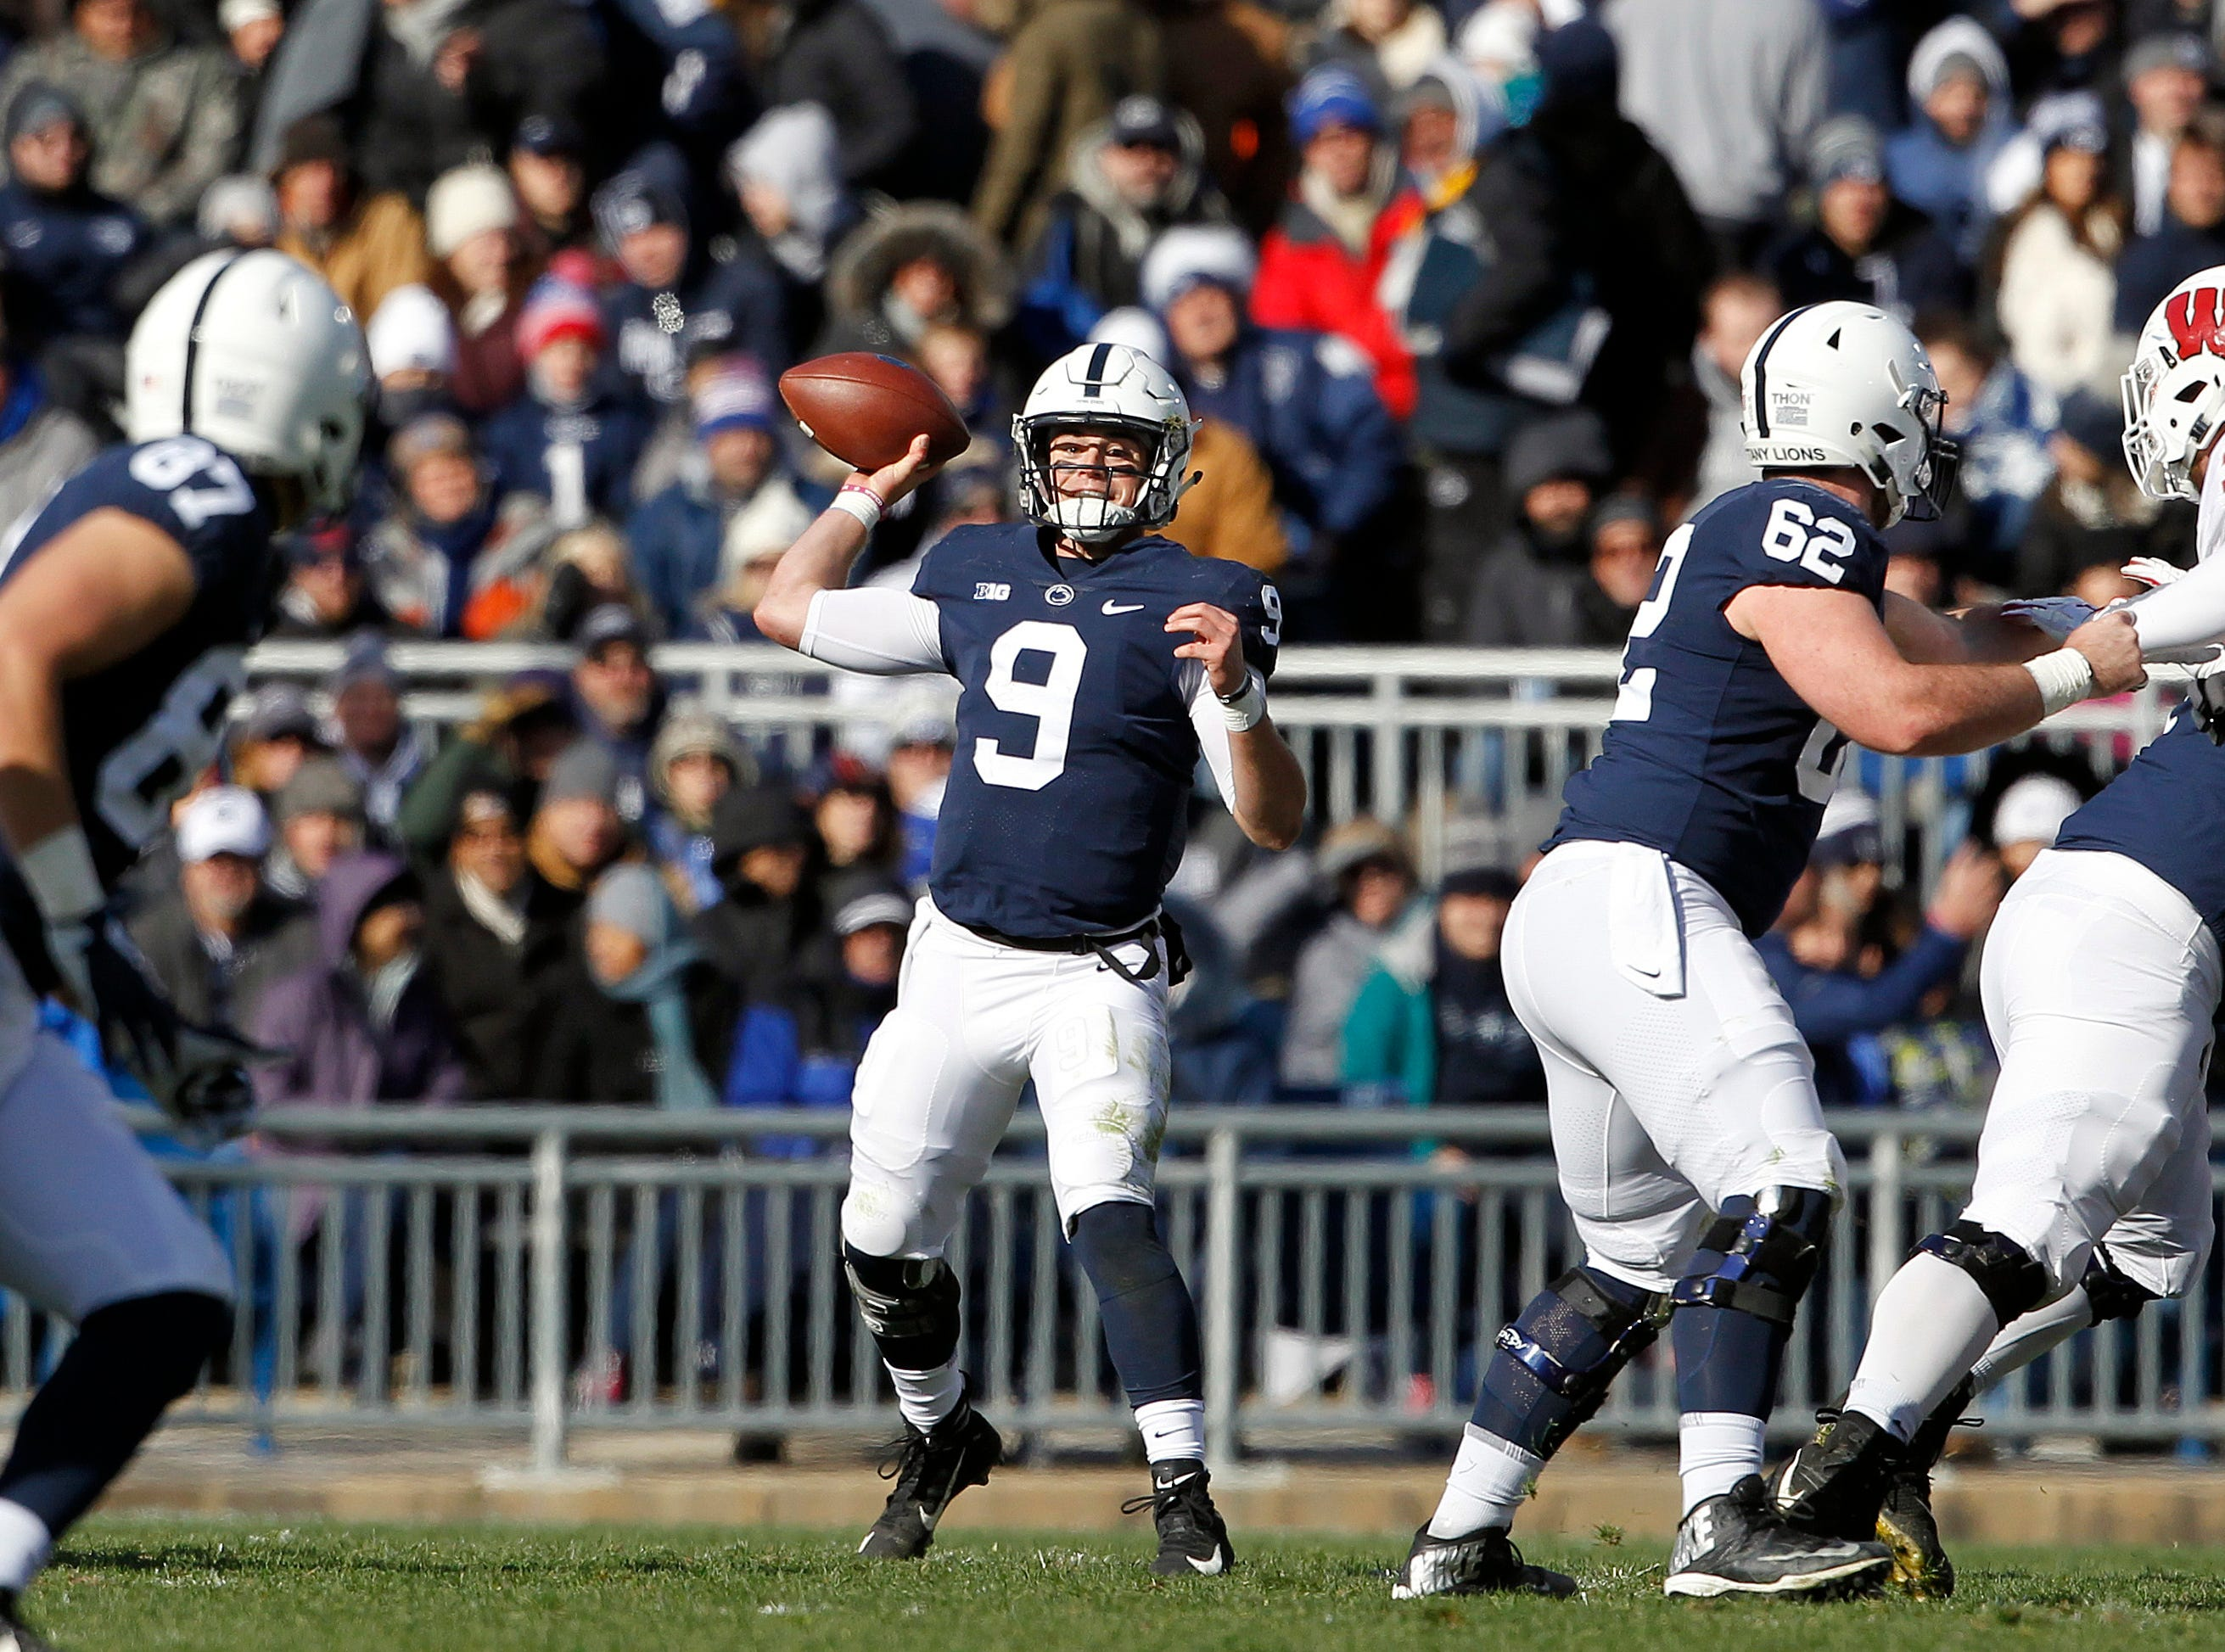 Penn State quarterback Trace McSorley (9) throws a pass against Wisconsin during the first half of an NCAA college football game in State College, Pa., Saturday, Nov. 10, 2018.